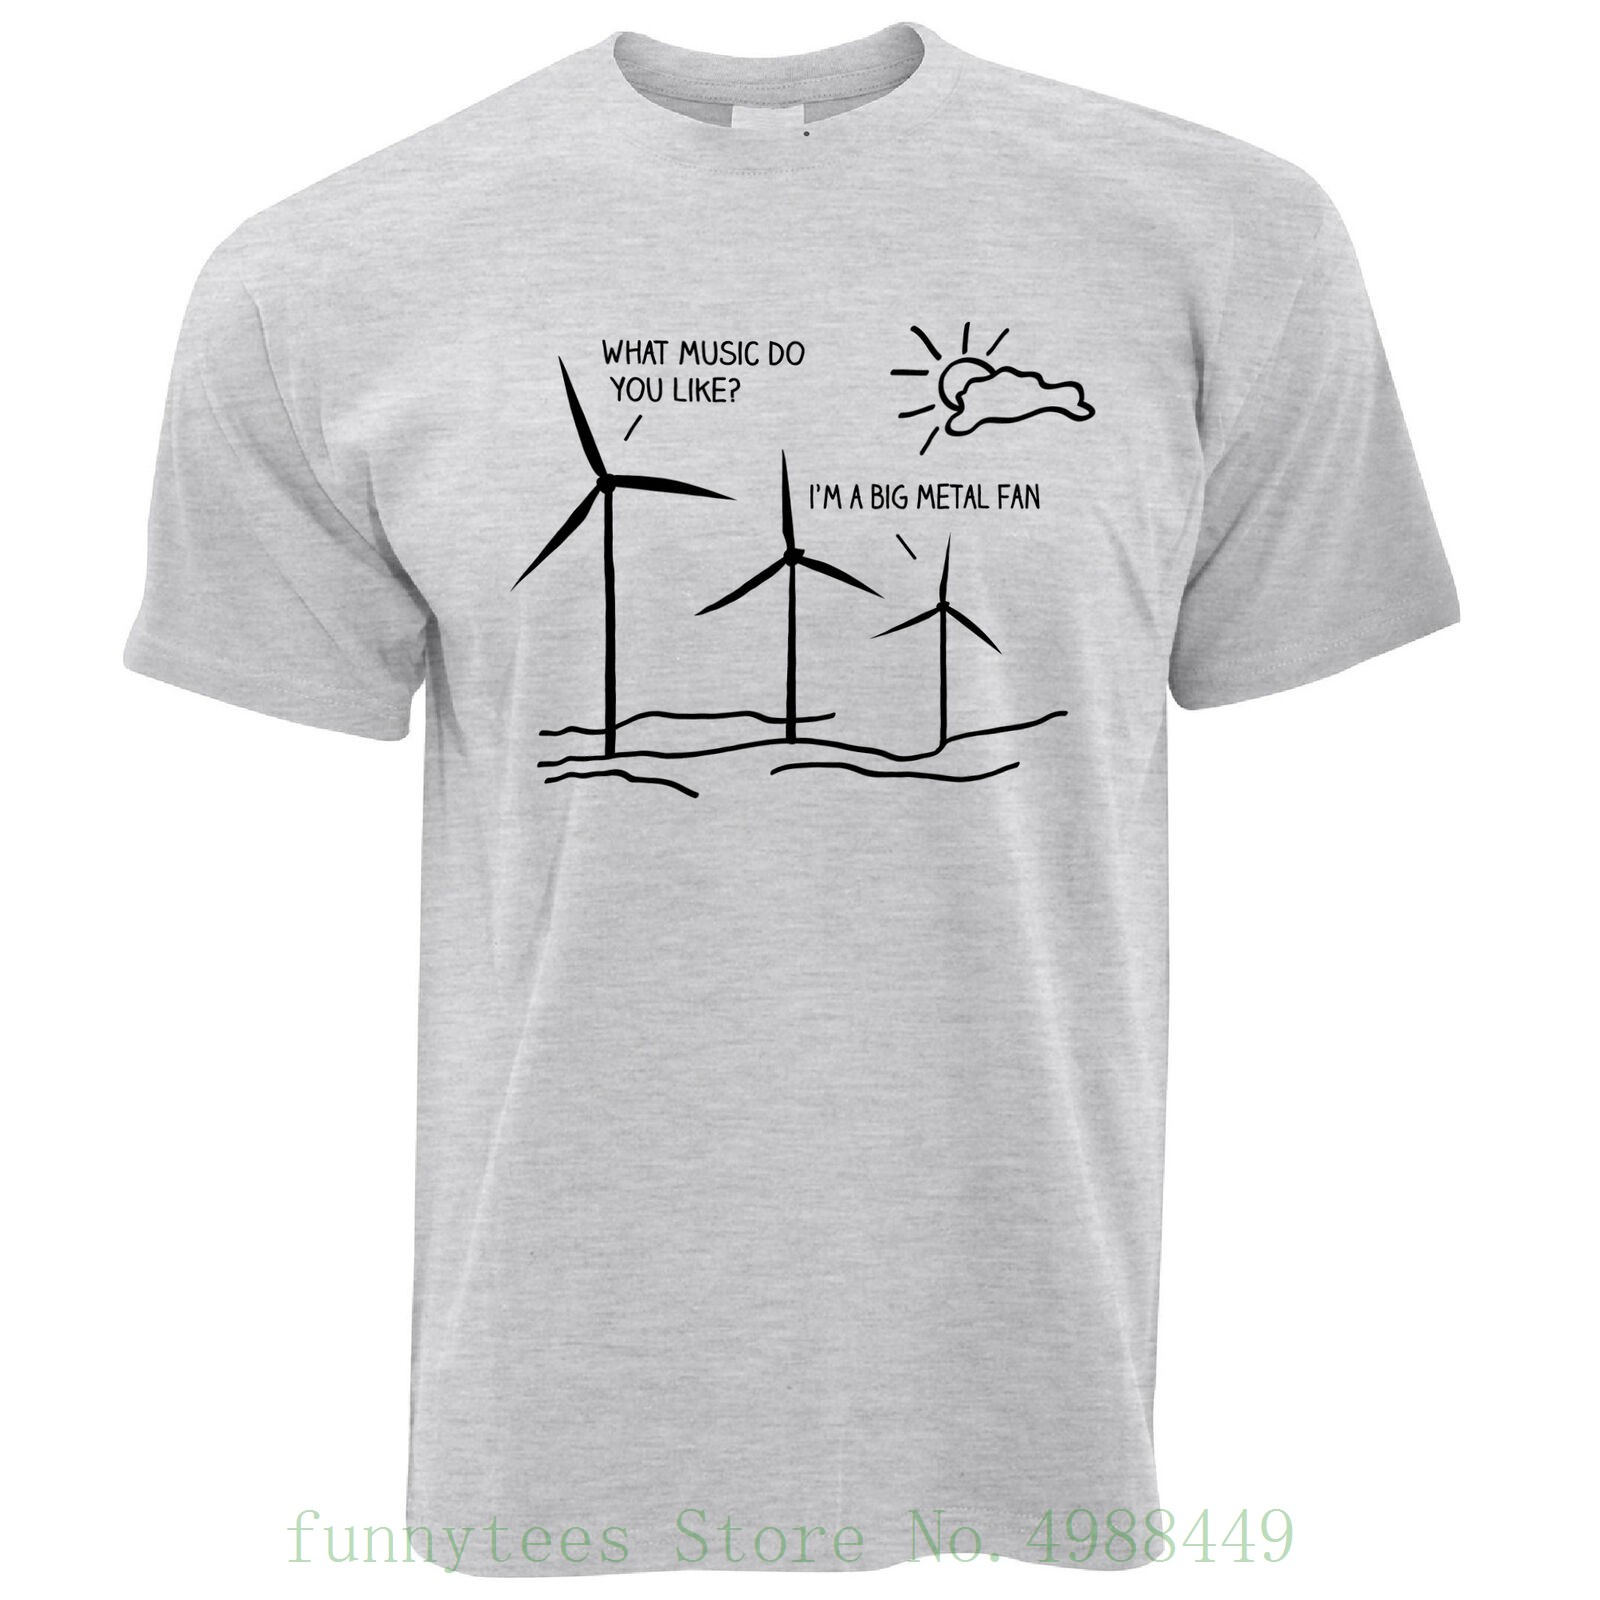 Novelty Music T Shirt I'm A Big Metal Fan Pun Joke Windmill Eco Rock Band Summer Man Tshirt Tops Tees New image